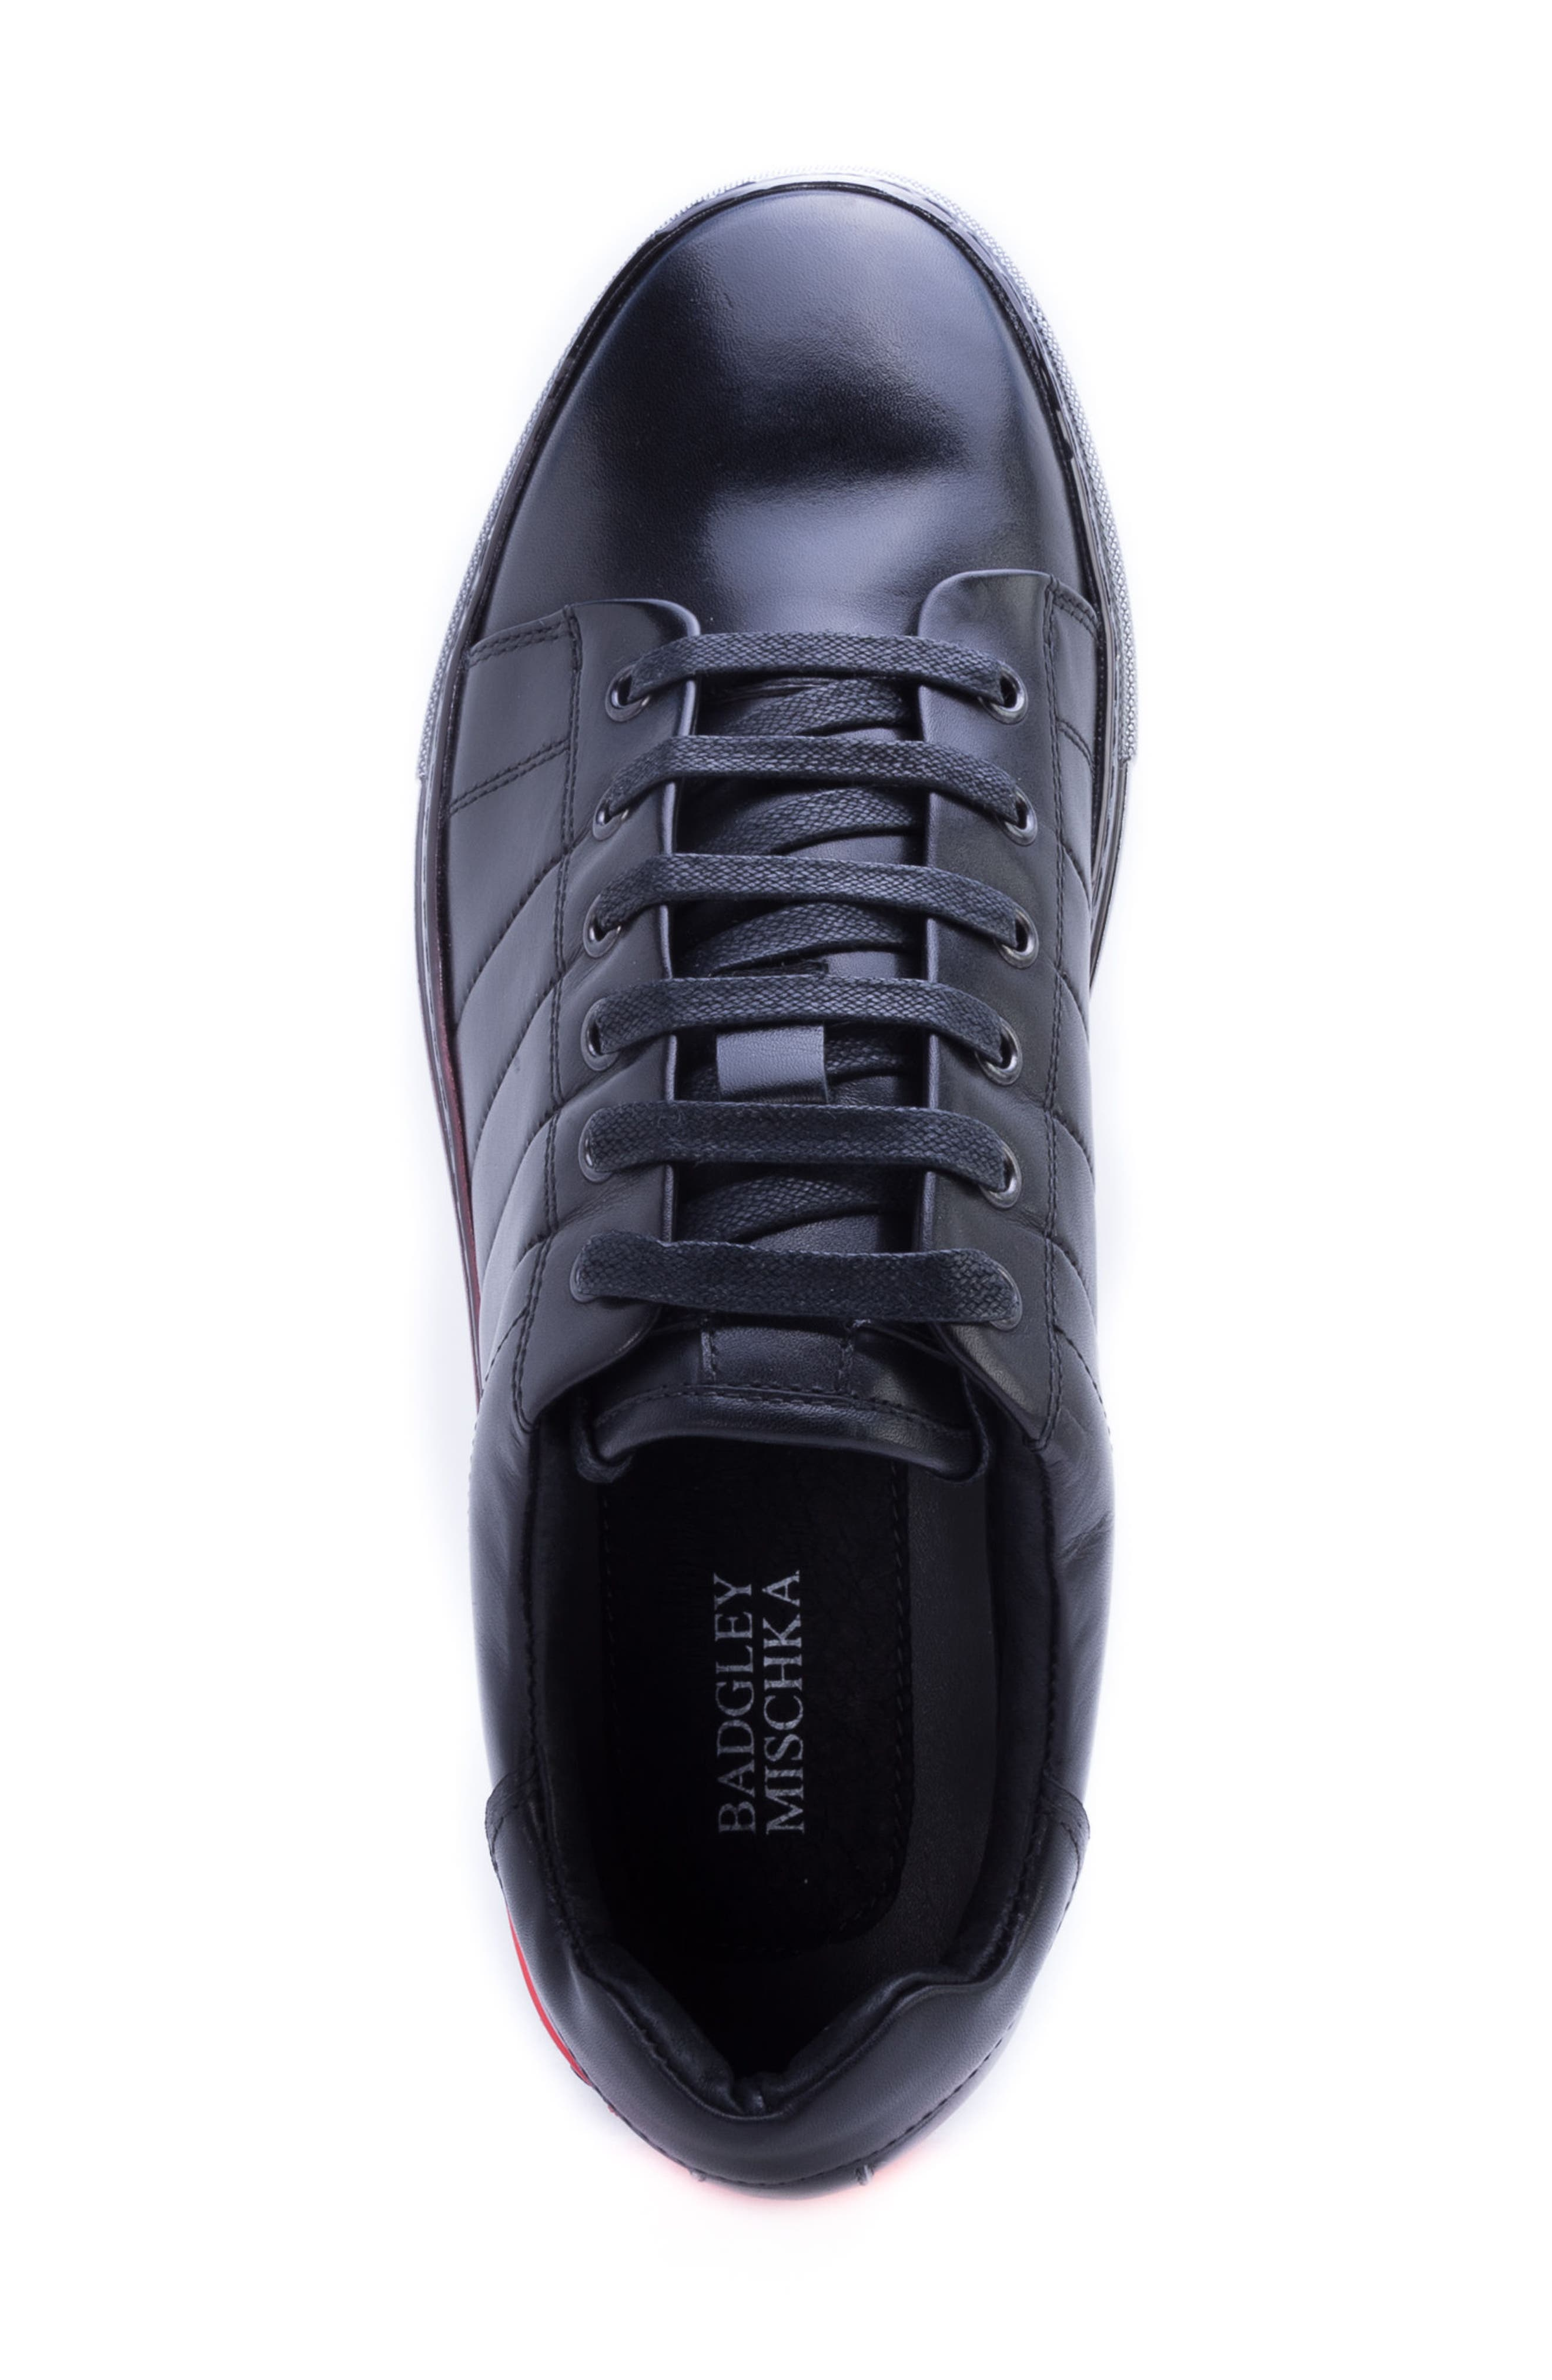 Badgley Mischka Duvall Sneaker,                             Alternate thumbnail 5, color,                             001